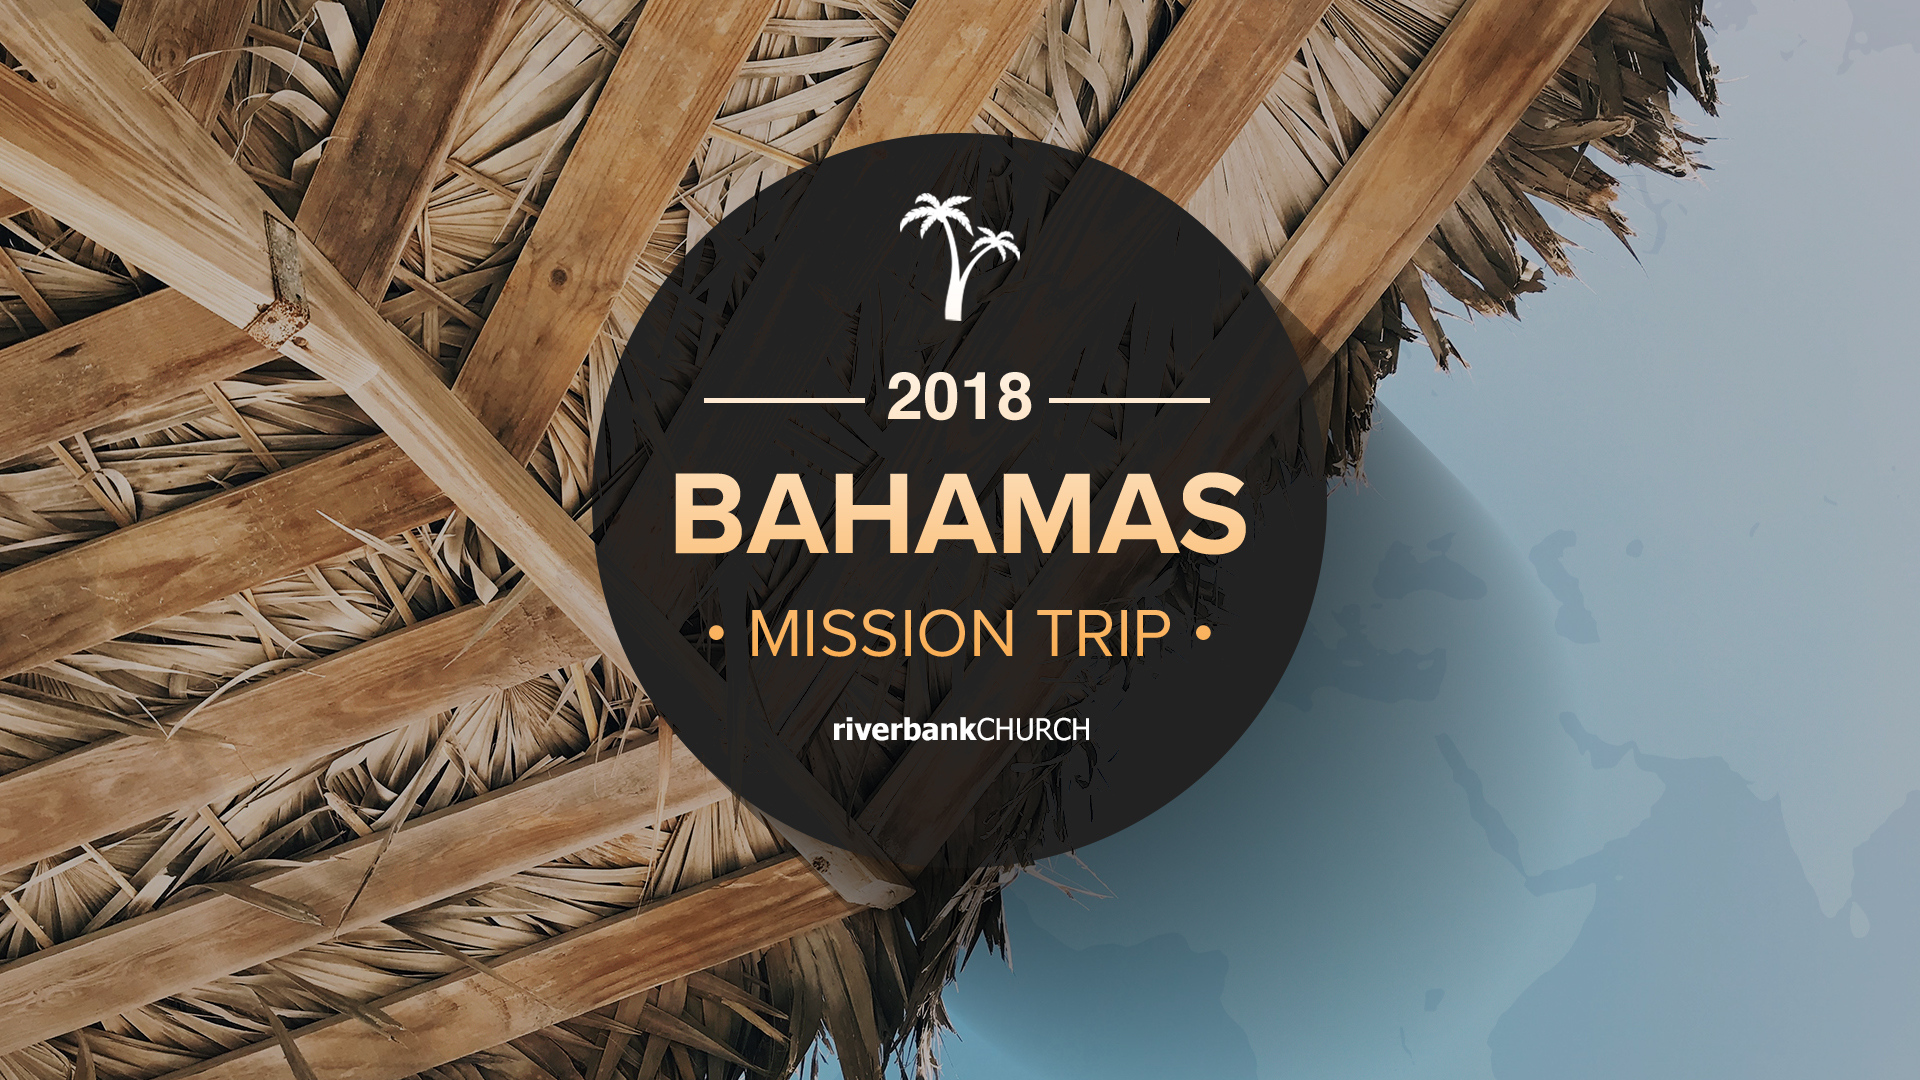 Bahamas missiontrip wide